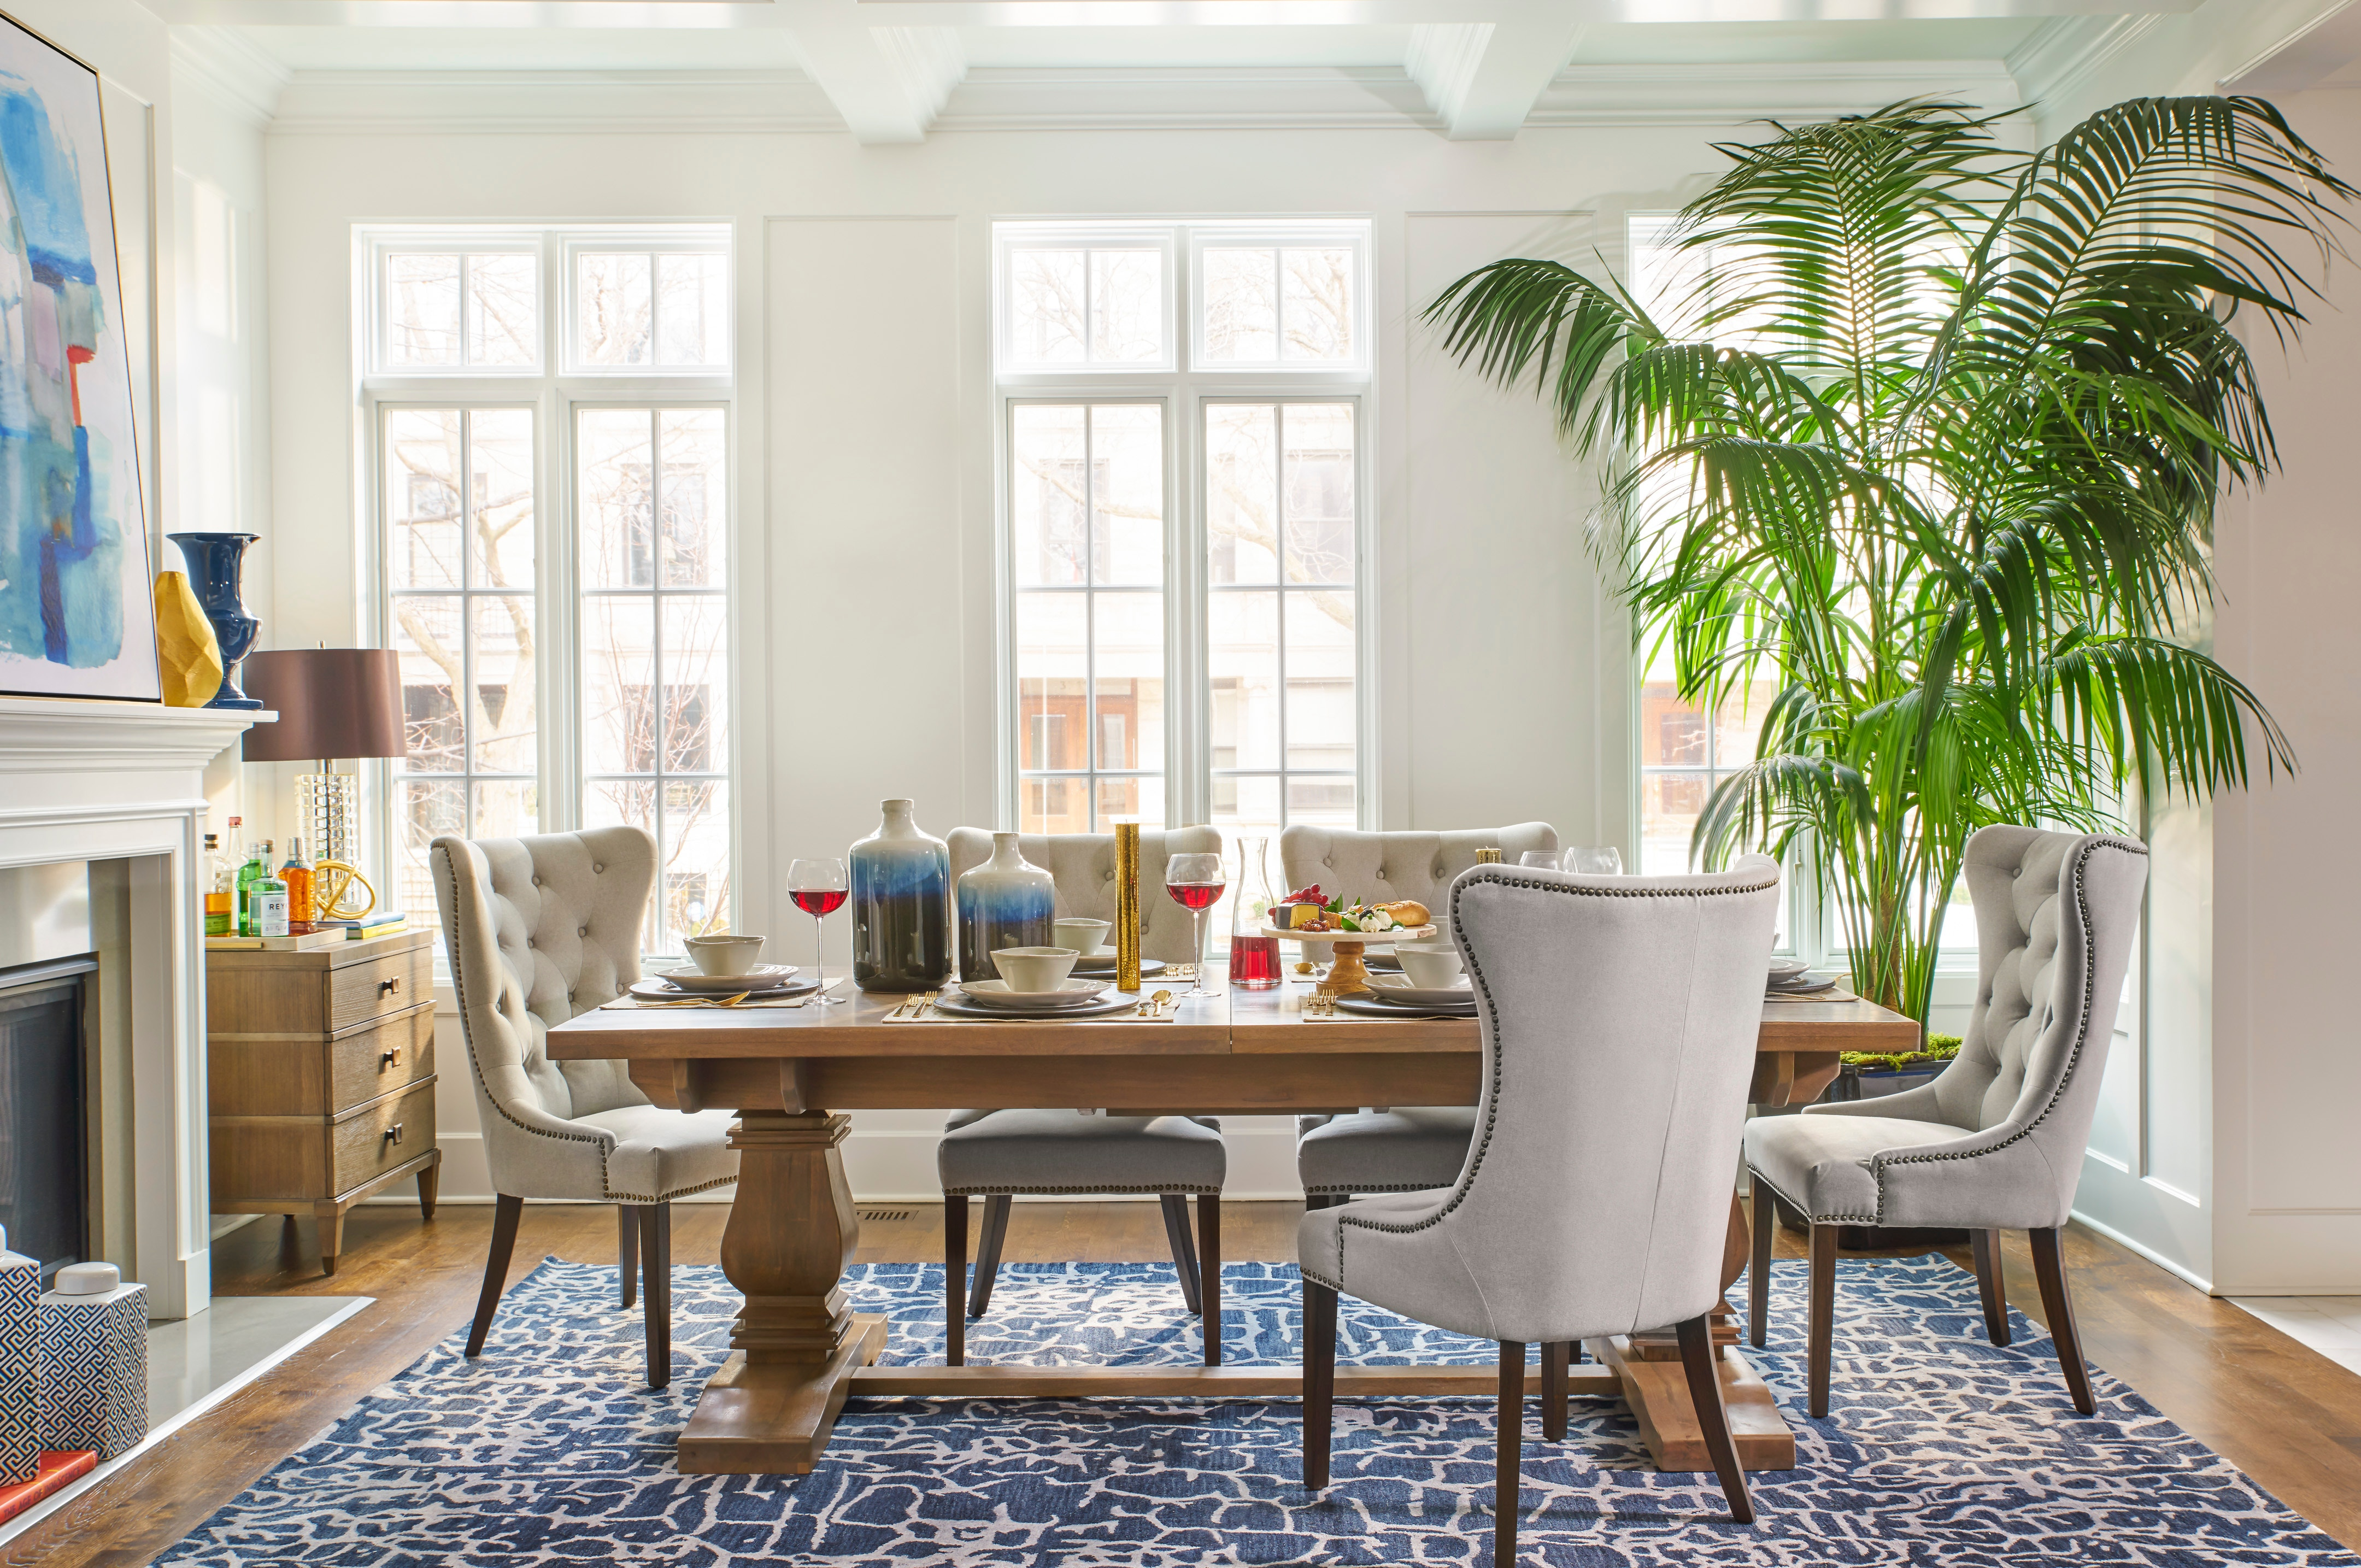 Genial Featured Product BRISTOW DINING ROOM From Walter E. Smithe Furniture +  Design